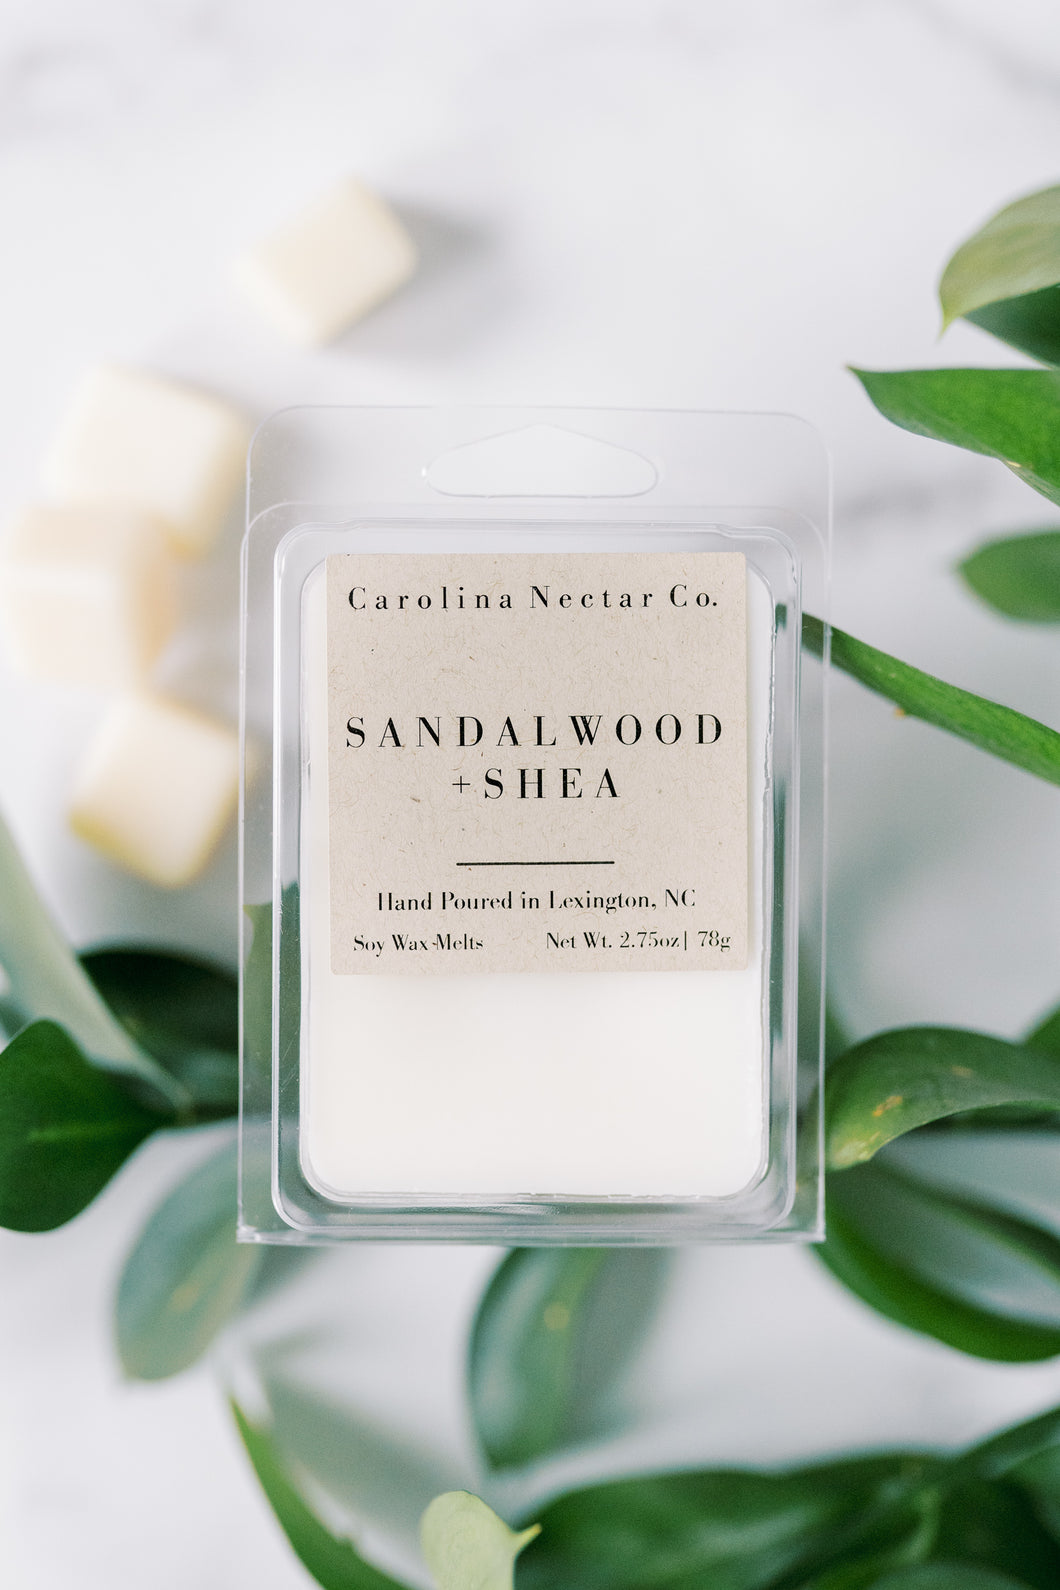 Sandalwood and Shea soy wax melts made by NC candle company